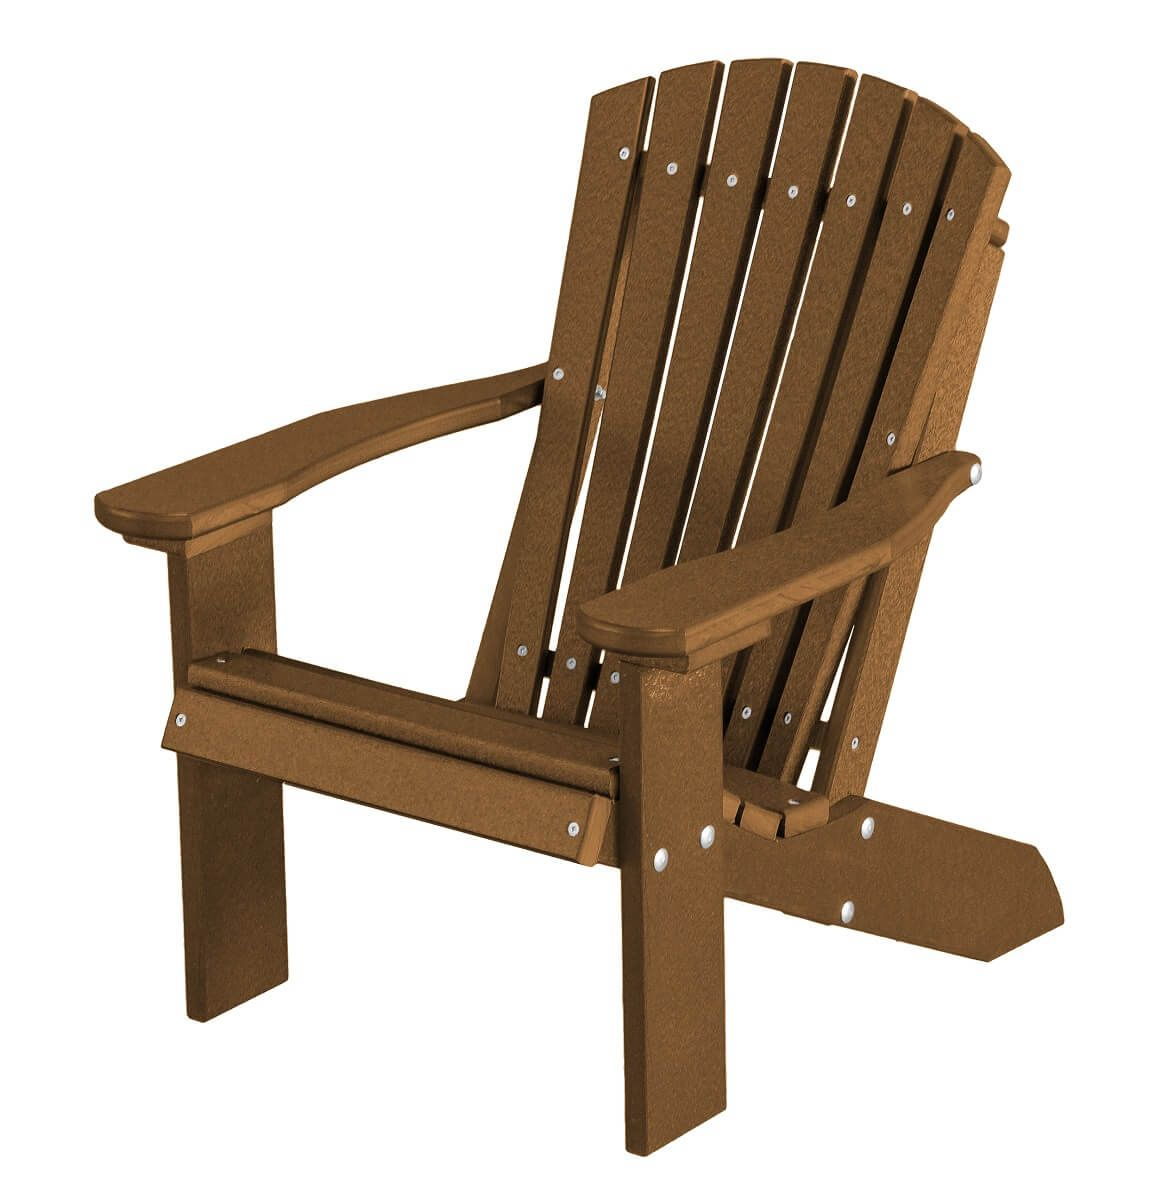 Tudor Brown Sidra Child's Adirondack Chair